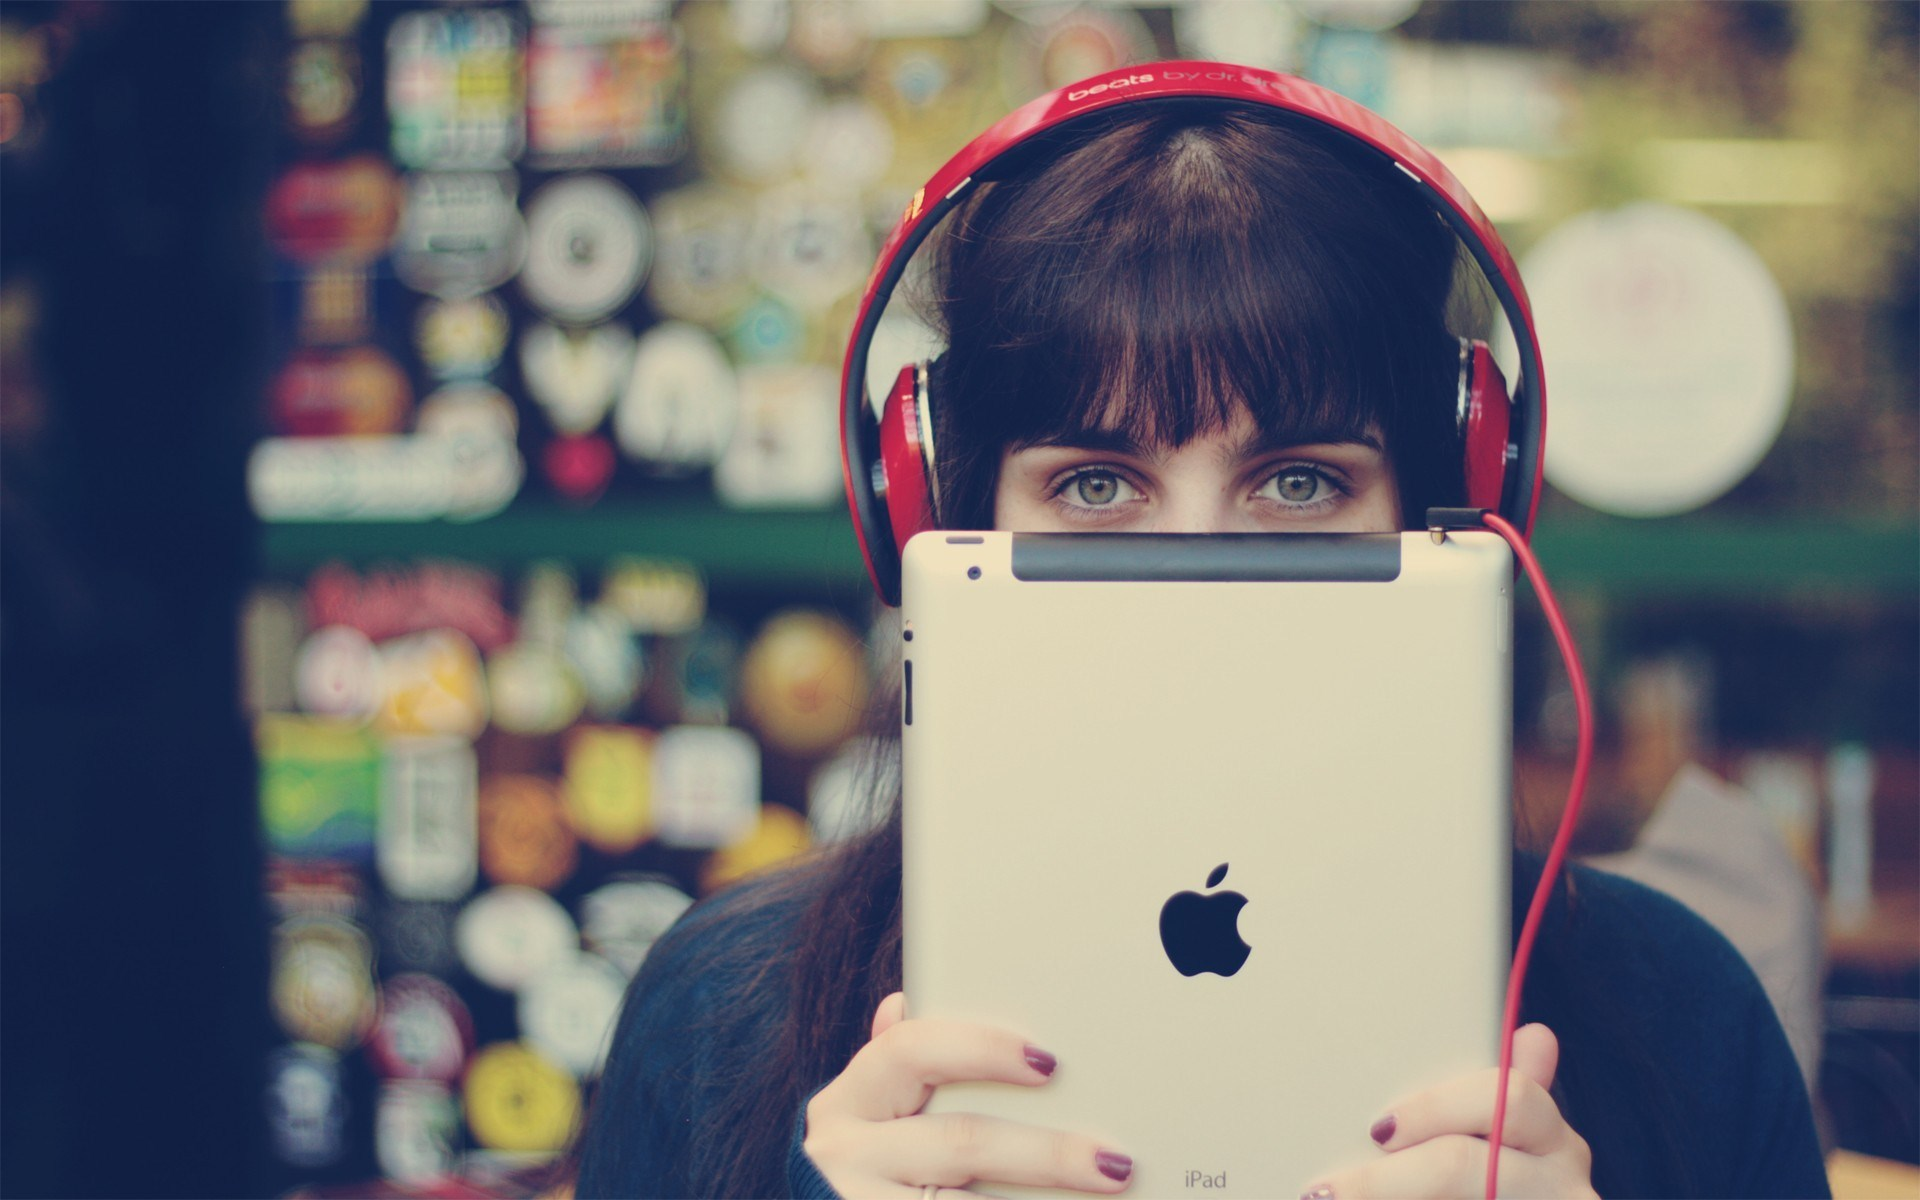 Hi Tech Girl Headphones Ipad Apple Bokeh Photo Vintage Hd Wallpaper